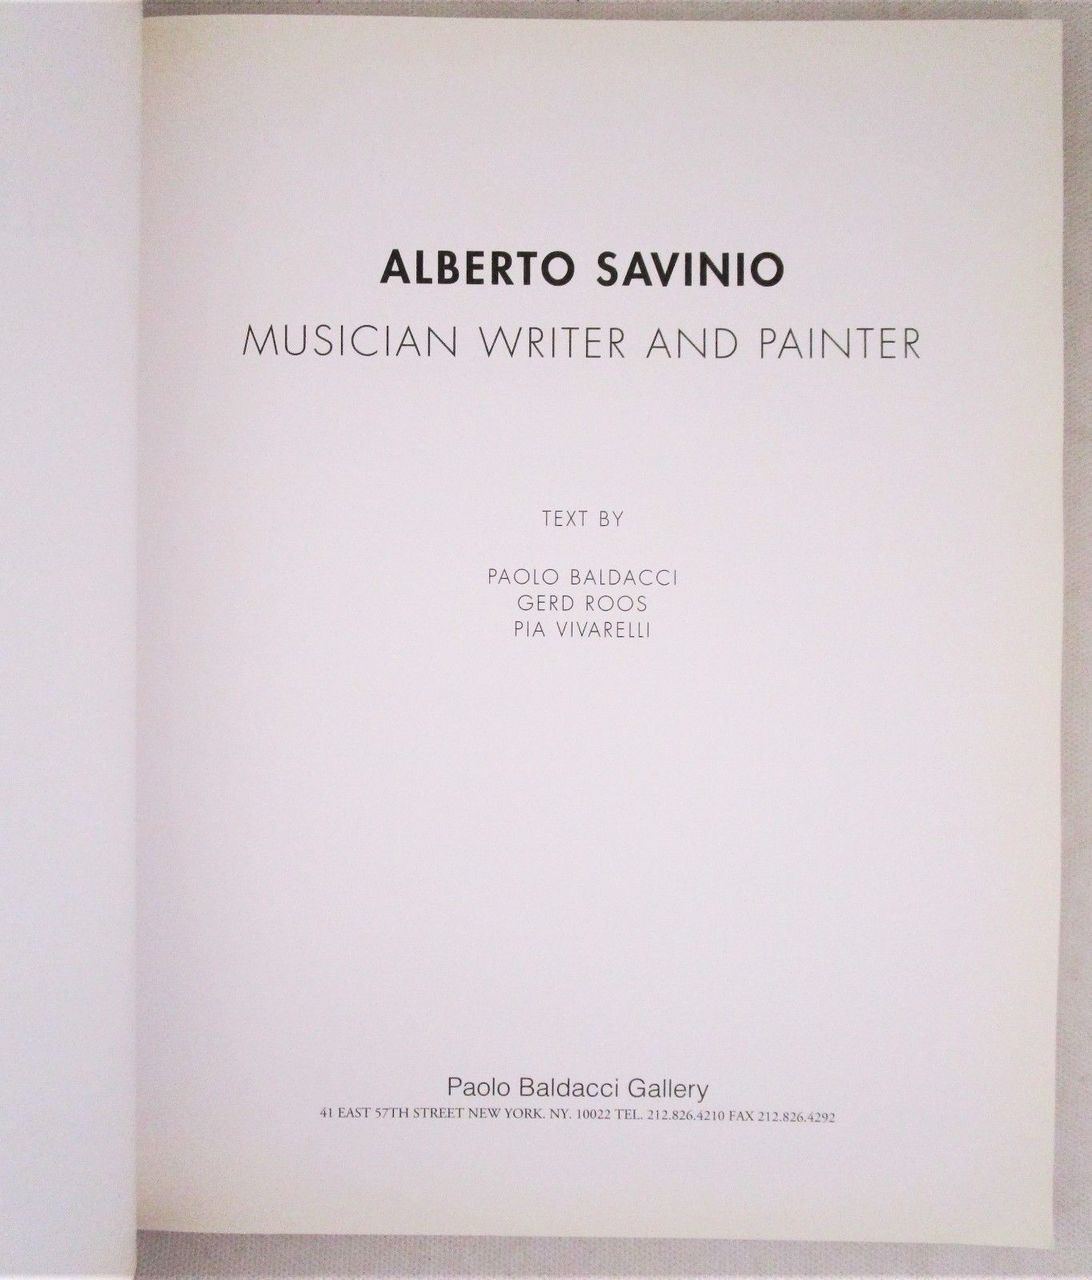 ALBERTO SAVINIO: MUSICIAN WRITER AND PAINTER - 1995 Surrealism Modern Catalog PB